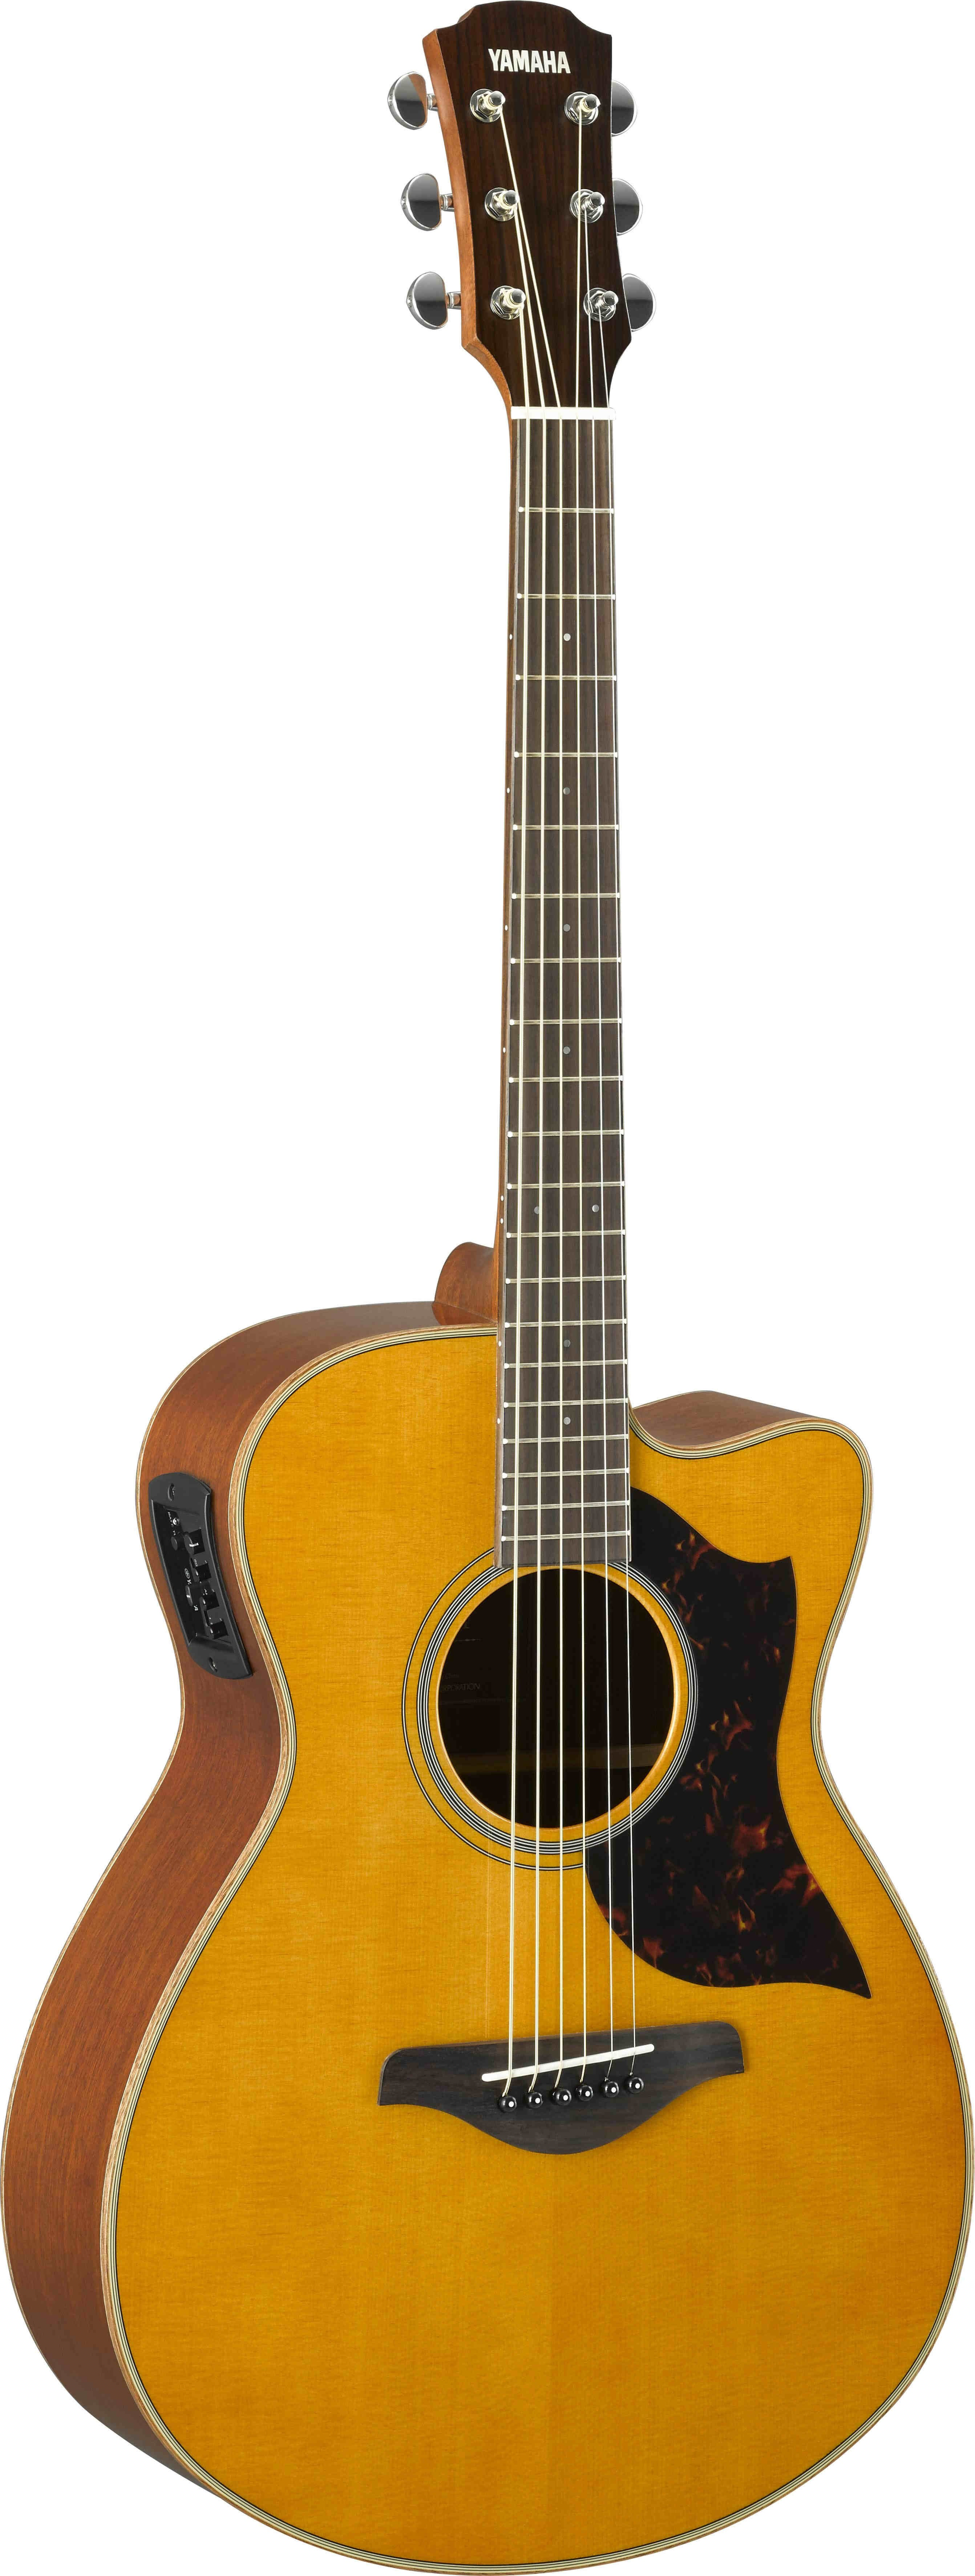 Vintage Natural Small Body Cutaway Acoustic-Electric Guitar